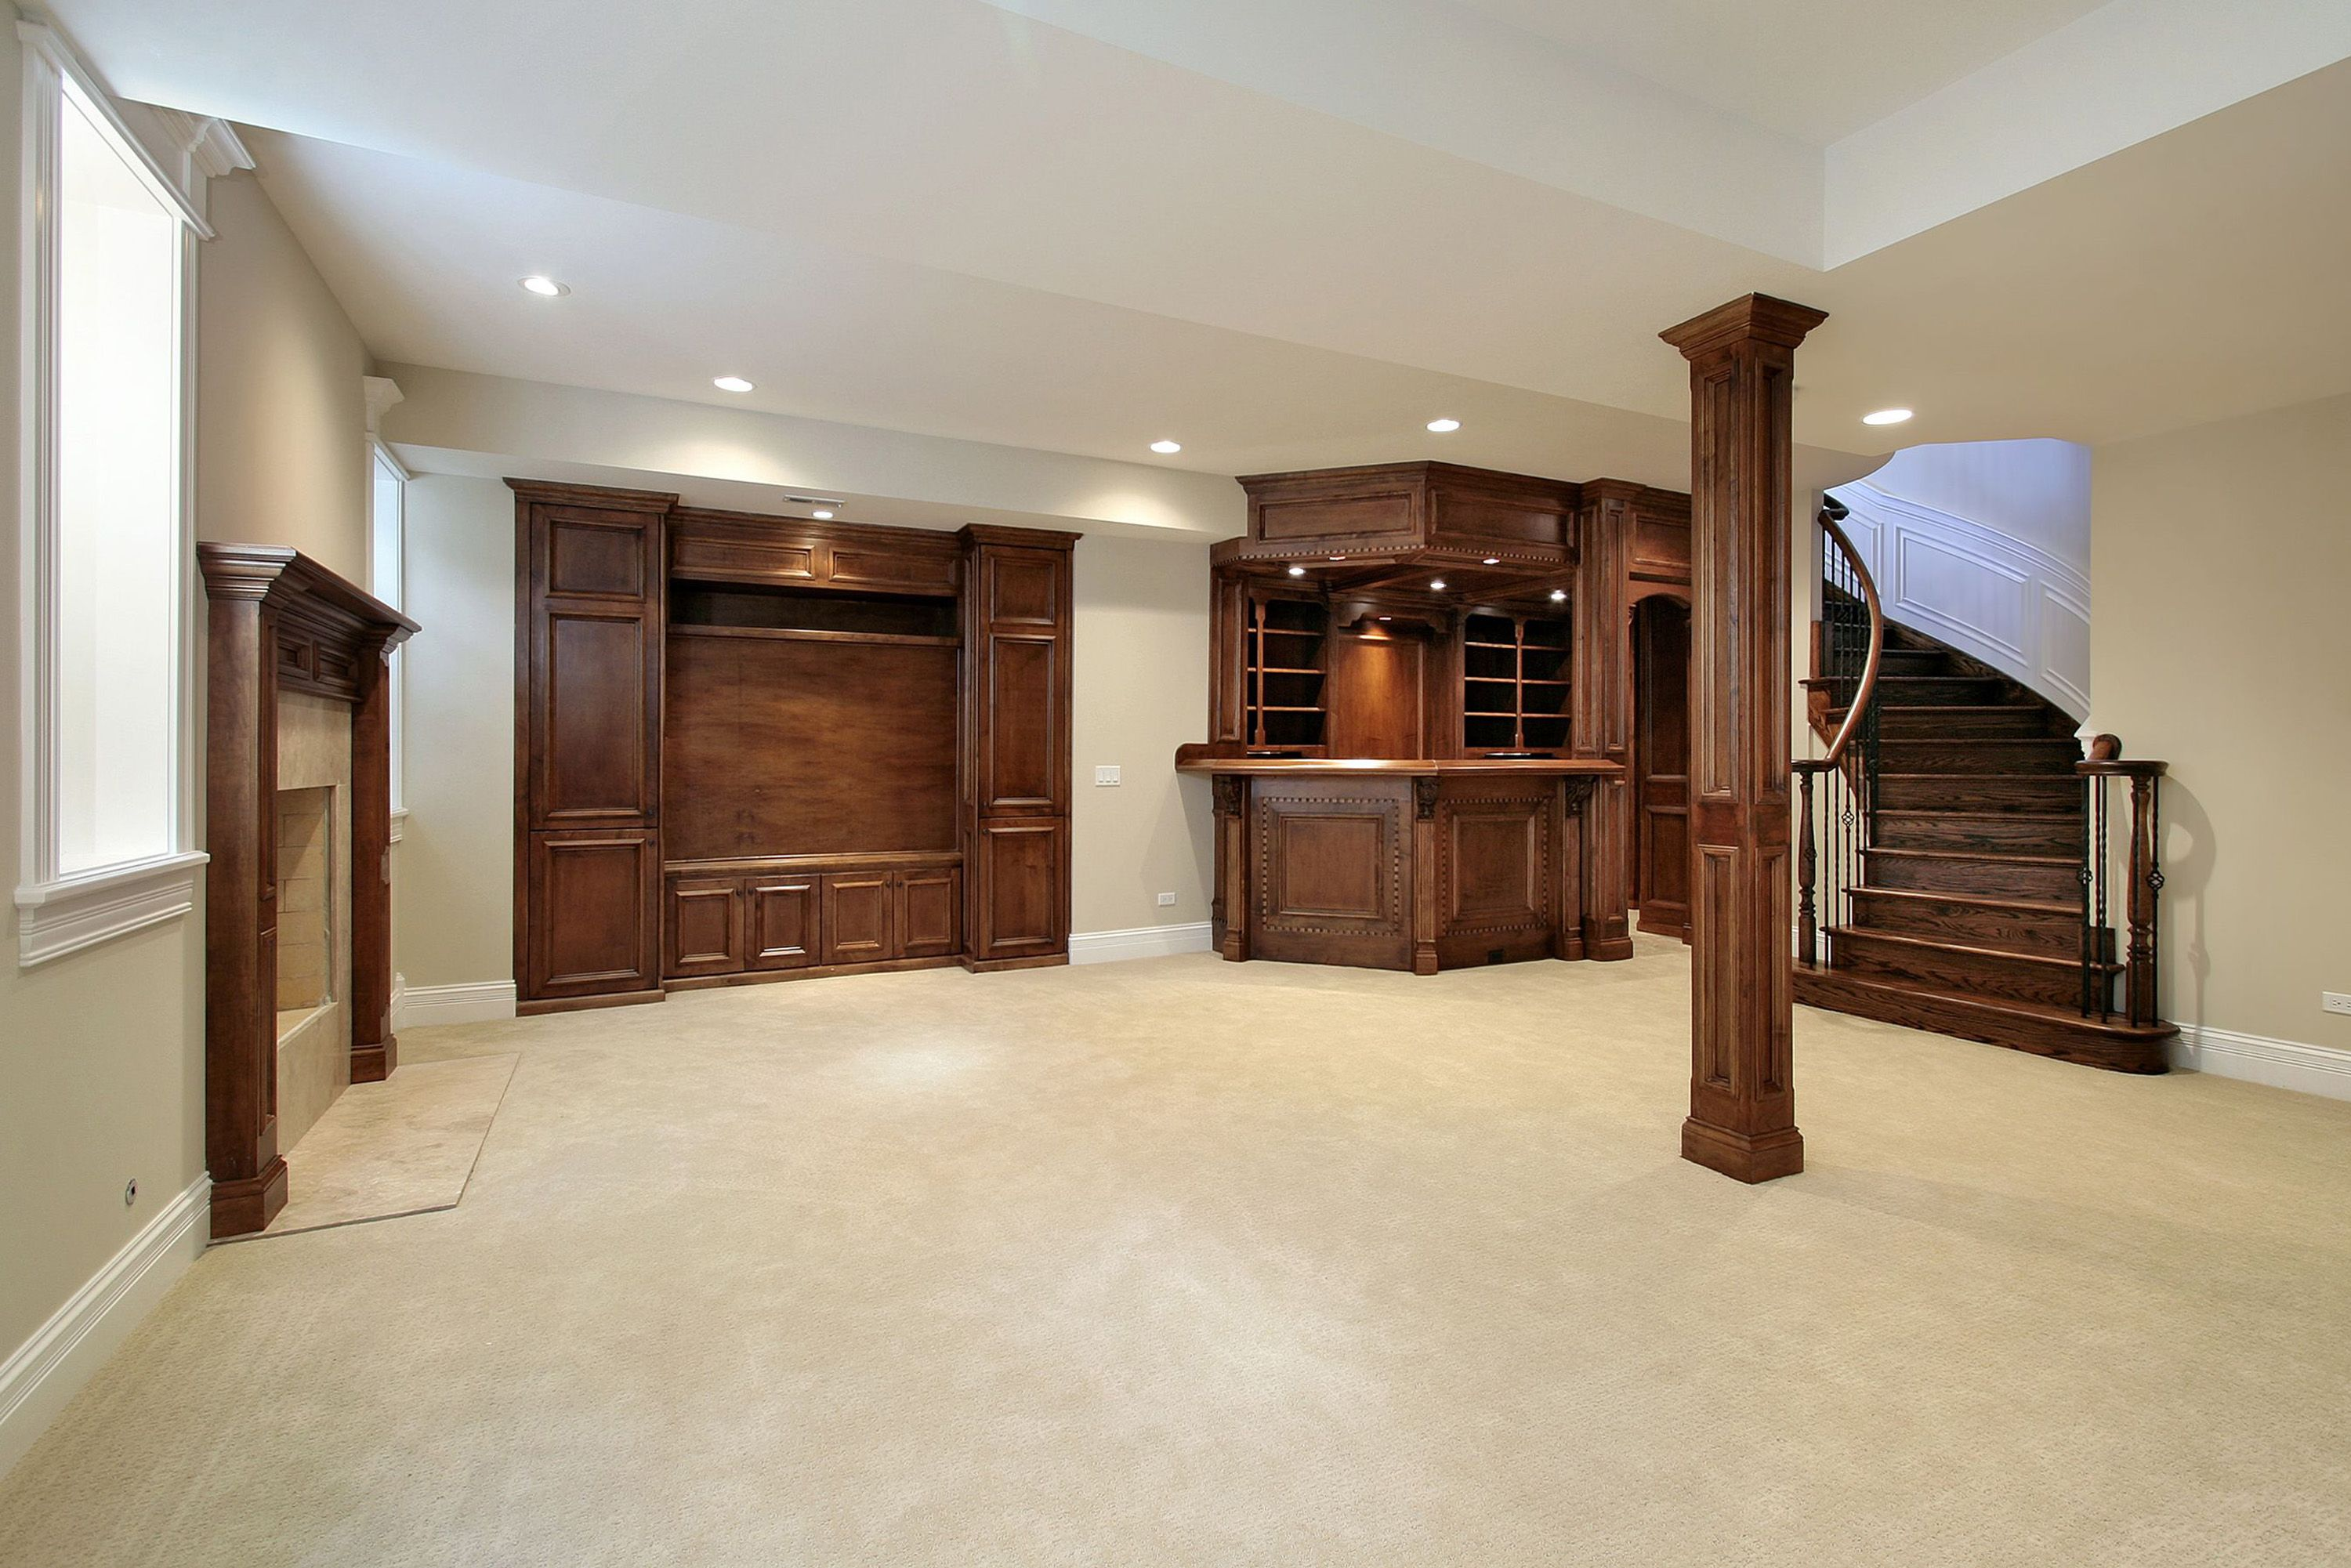 Renovated Basements Finished Basement Ideas  Are You Currently Undertaking Your Own